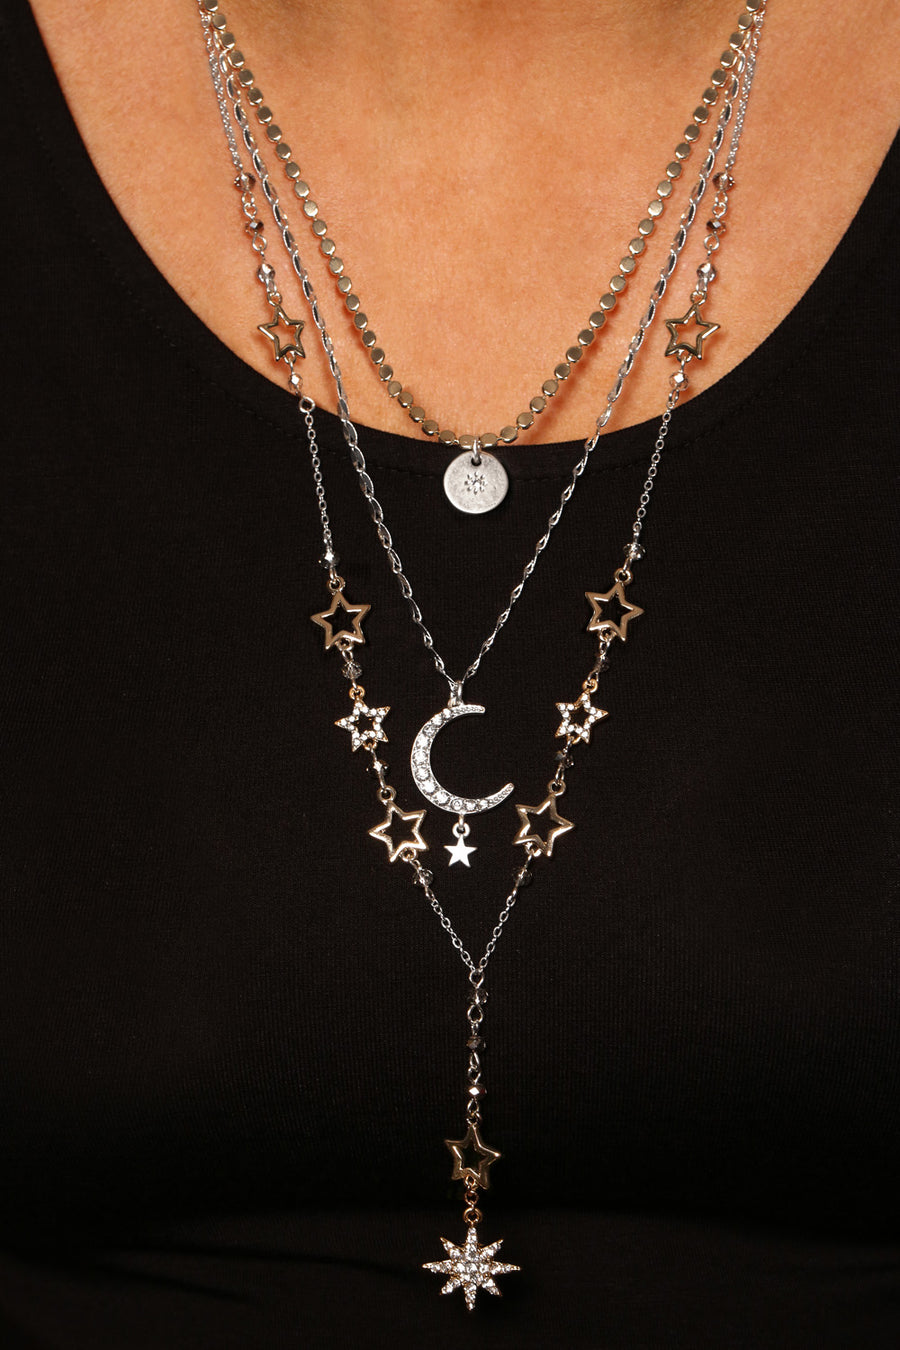 Kate Thornton Silver/Gold Celestial Layer Necklace Set